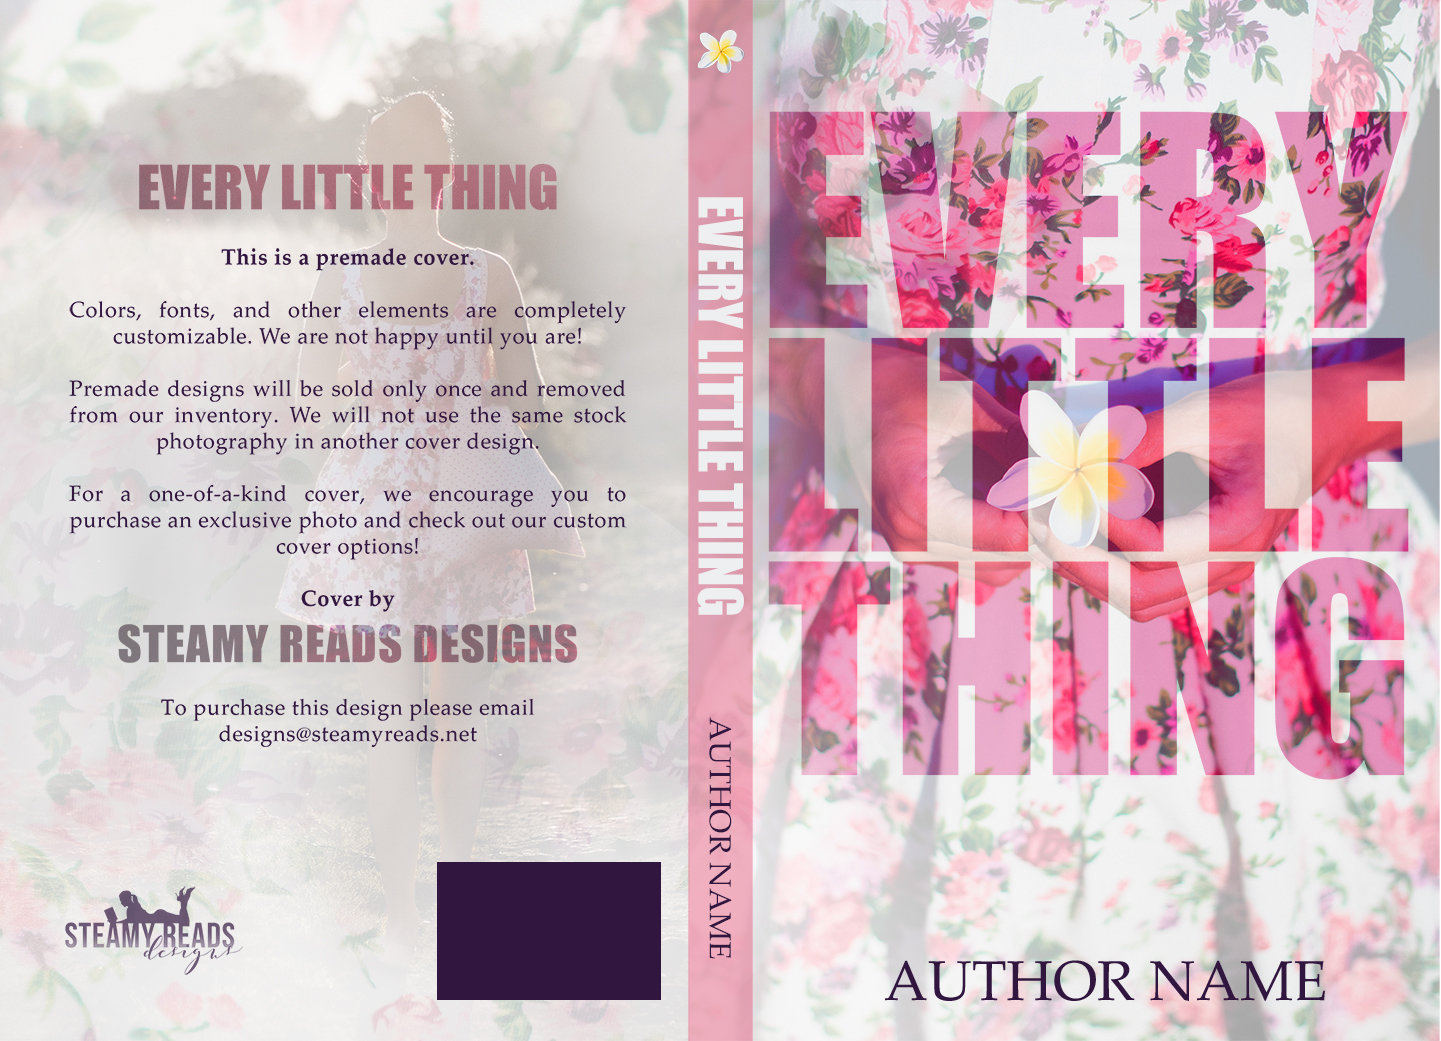 Every Little Thing - Premade Cover 00015